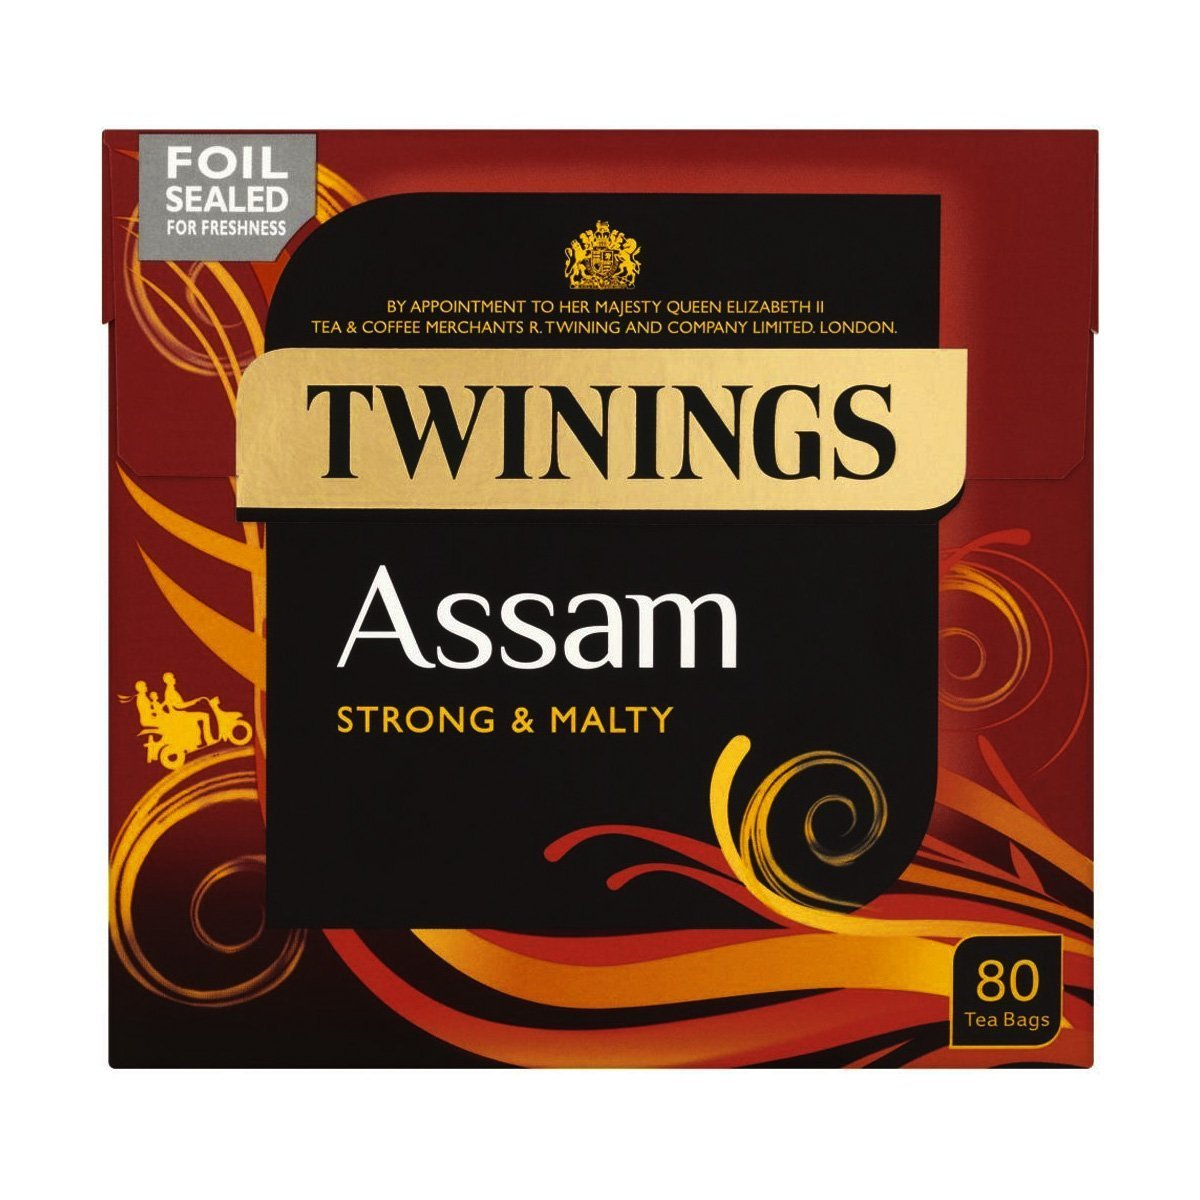 Twinings Assam Strong and Malty, 80 Tea Bags Style:Twinings Assam Strong and Malty, 80 Tea Bags